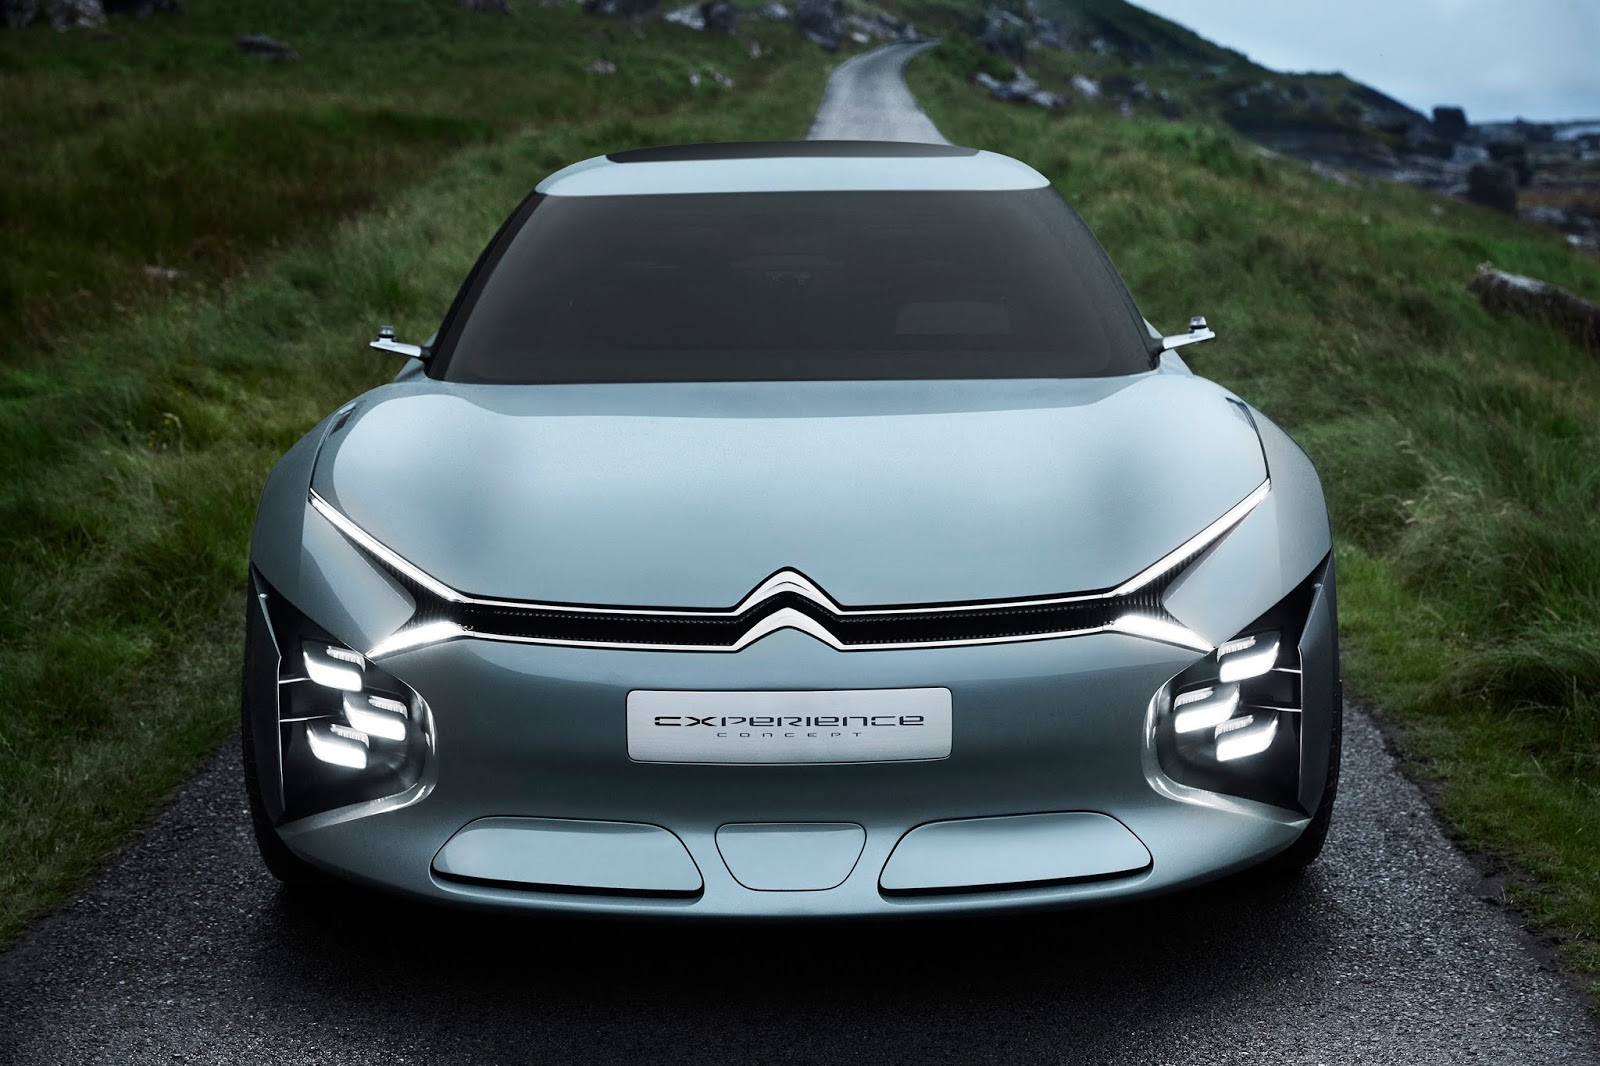 Grilles Tv Bein Sport The Motoring World Citroen To Launch An All New Concept At This